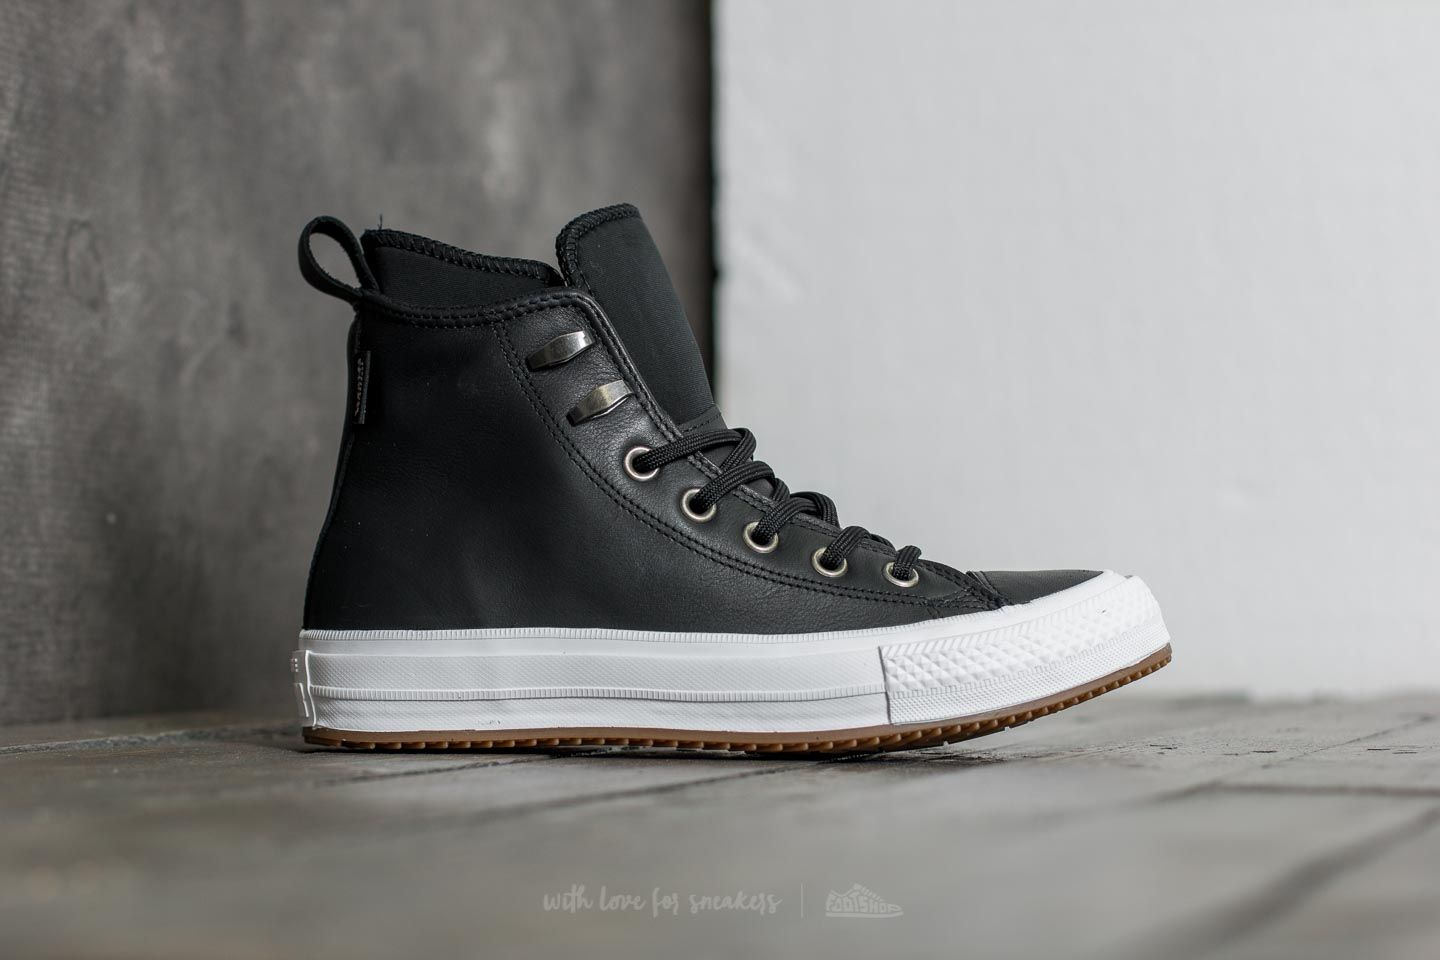 e383812262025 Converse Chuck Taylor All Star Waterproof Boot Hi Black/ Black/ White at a  great